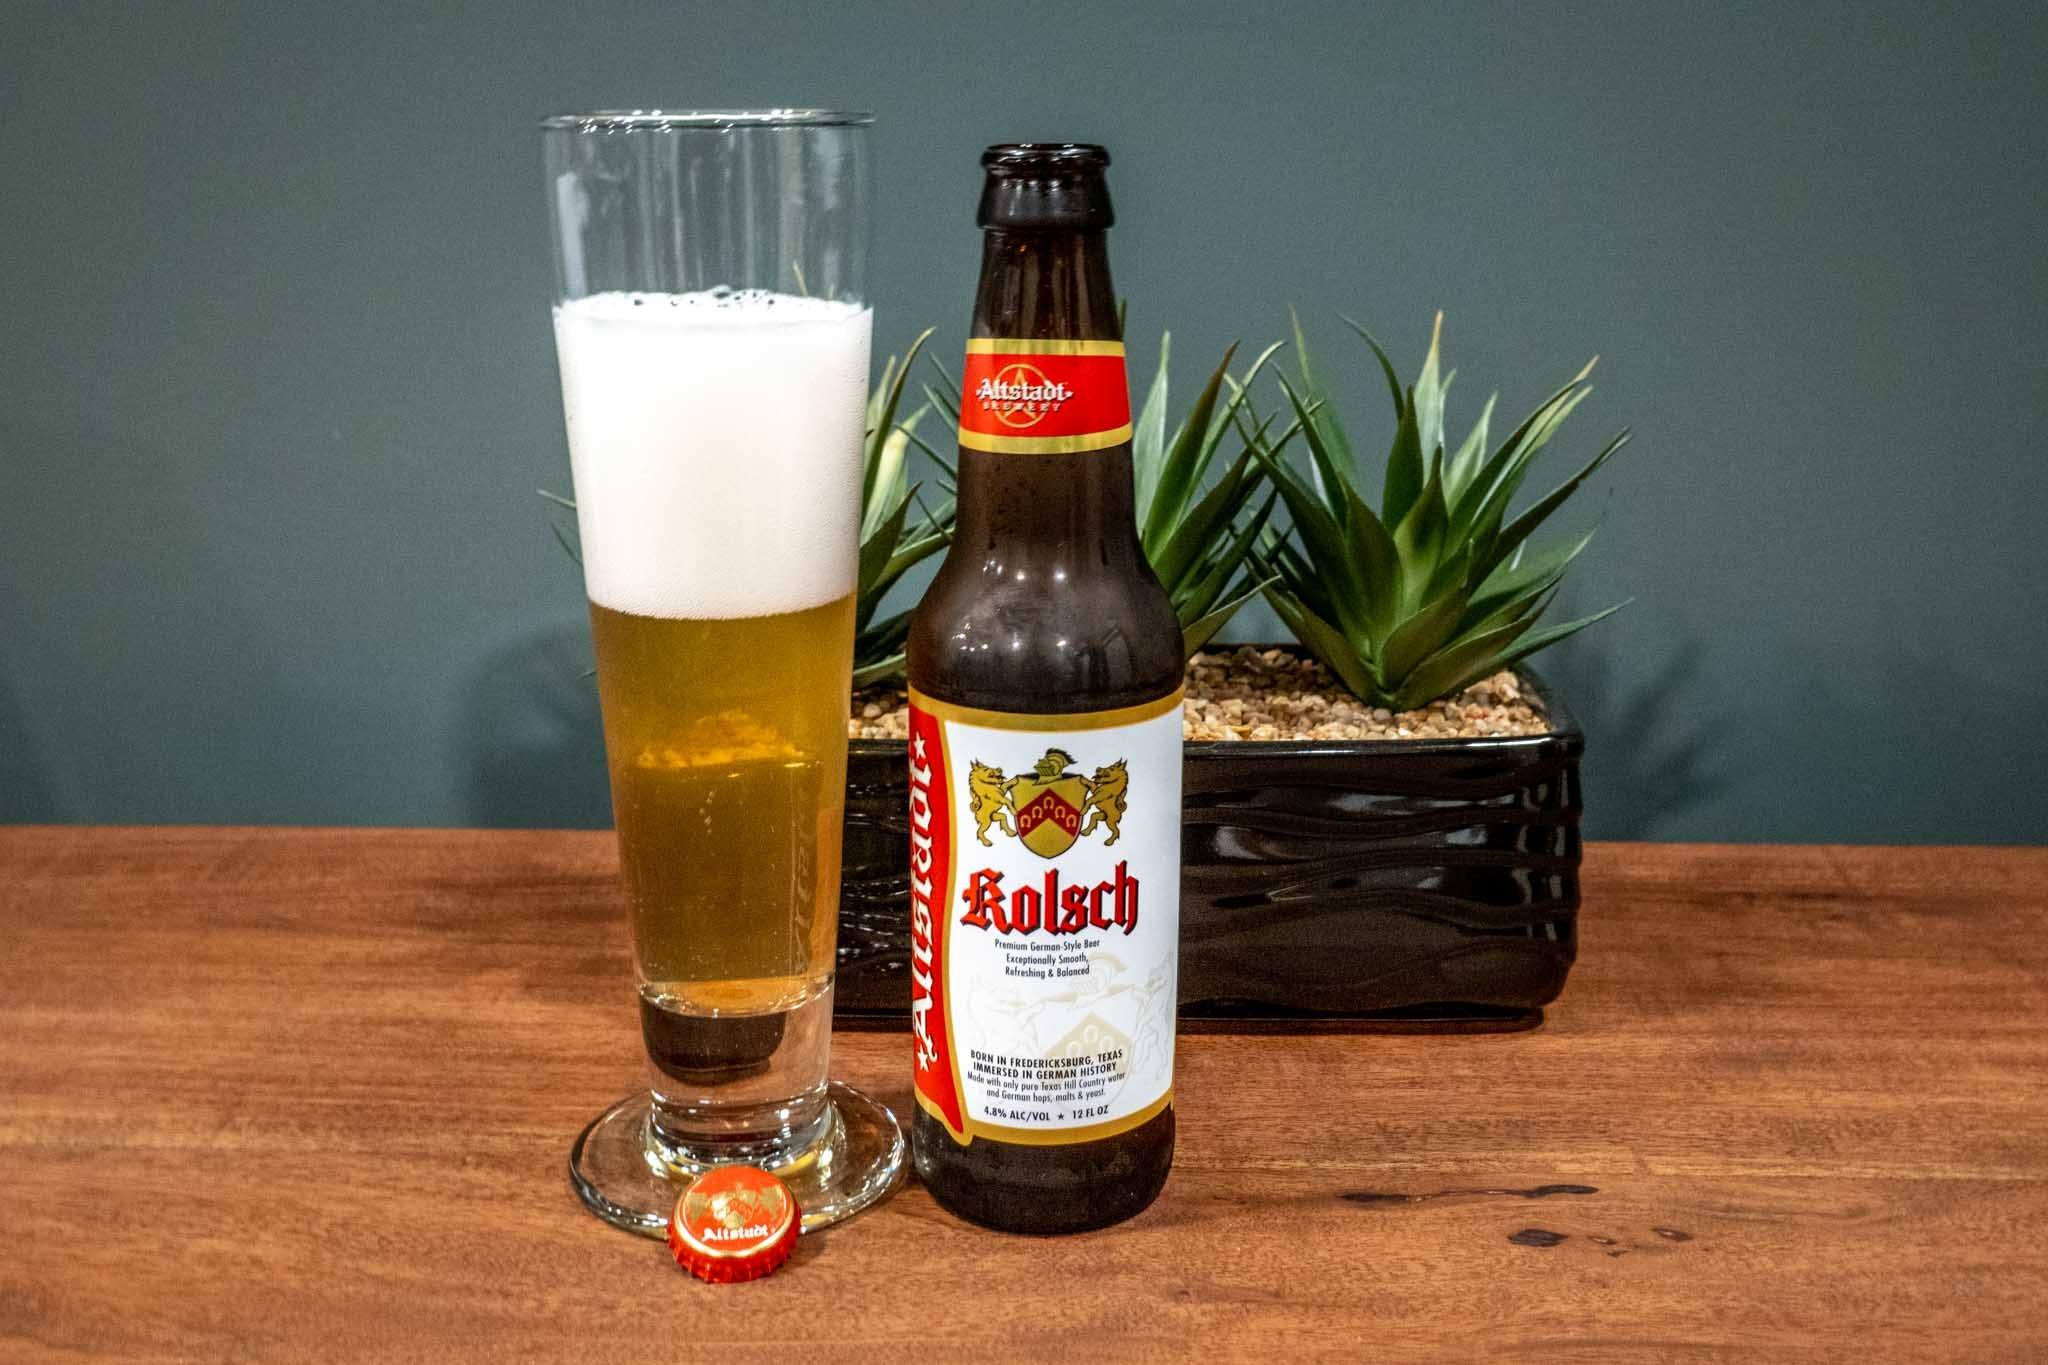 Glass and bottle of Kolsch beer on table